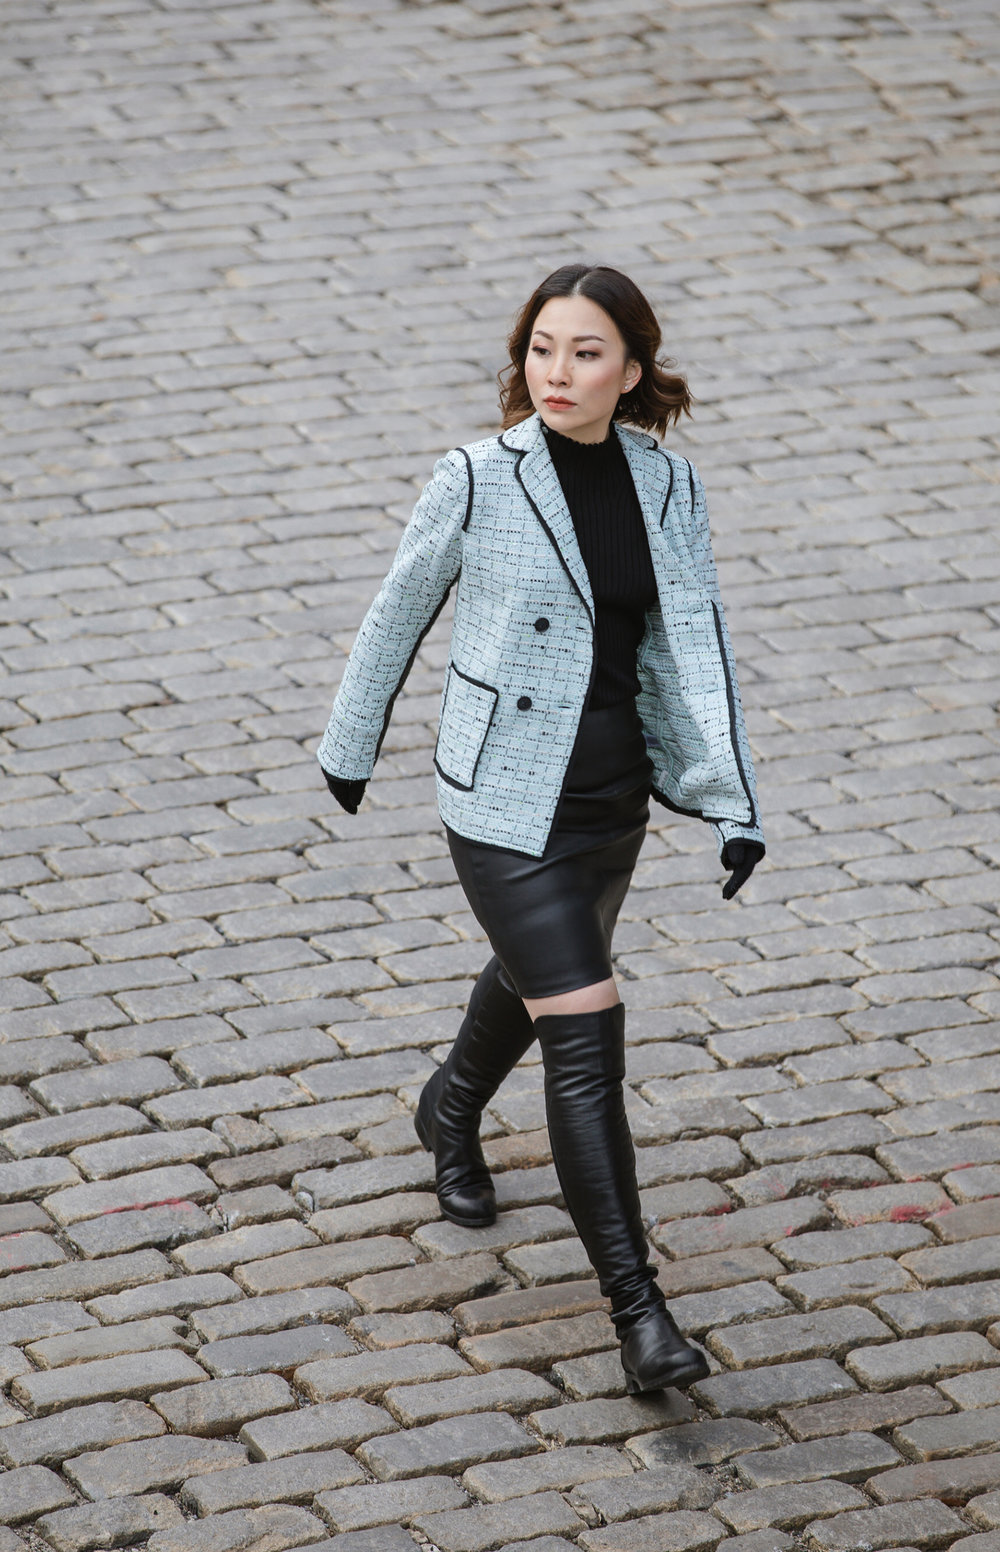 st john knits adriana multi tweed jacket nyc style.JPG